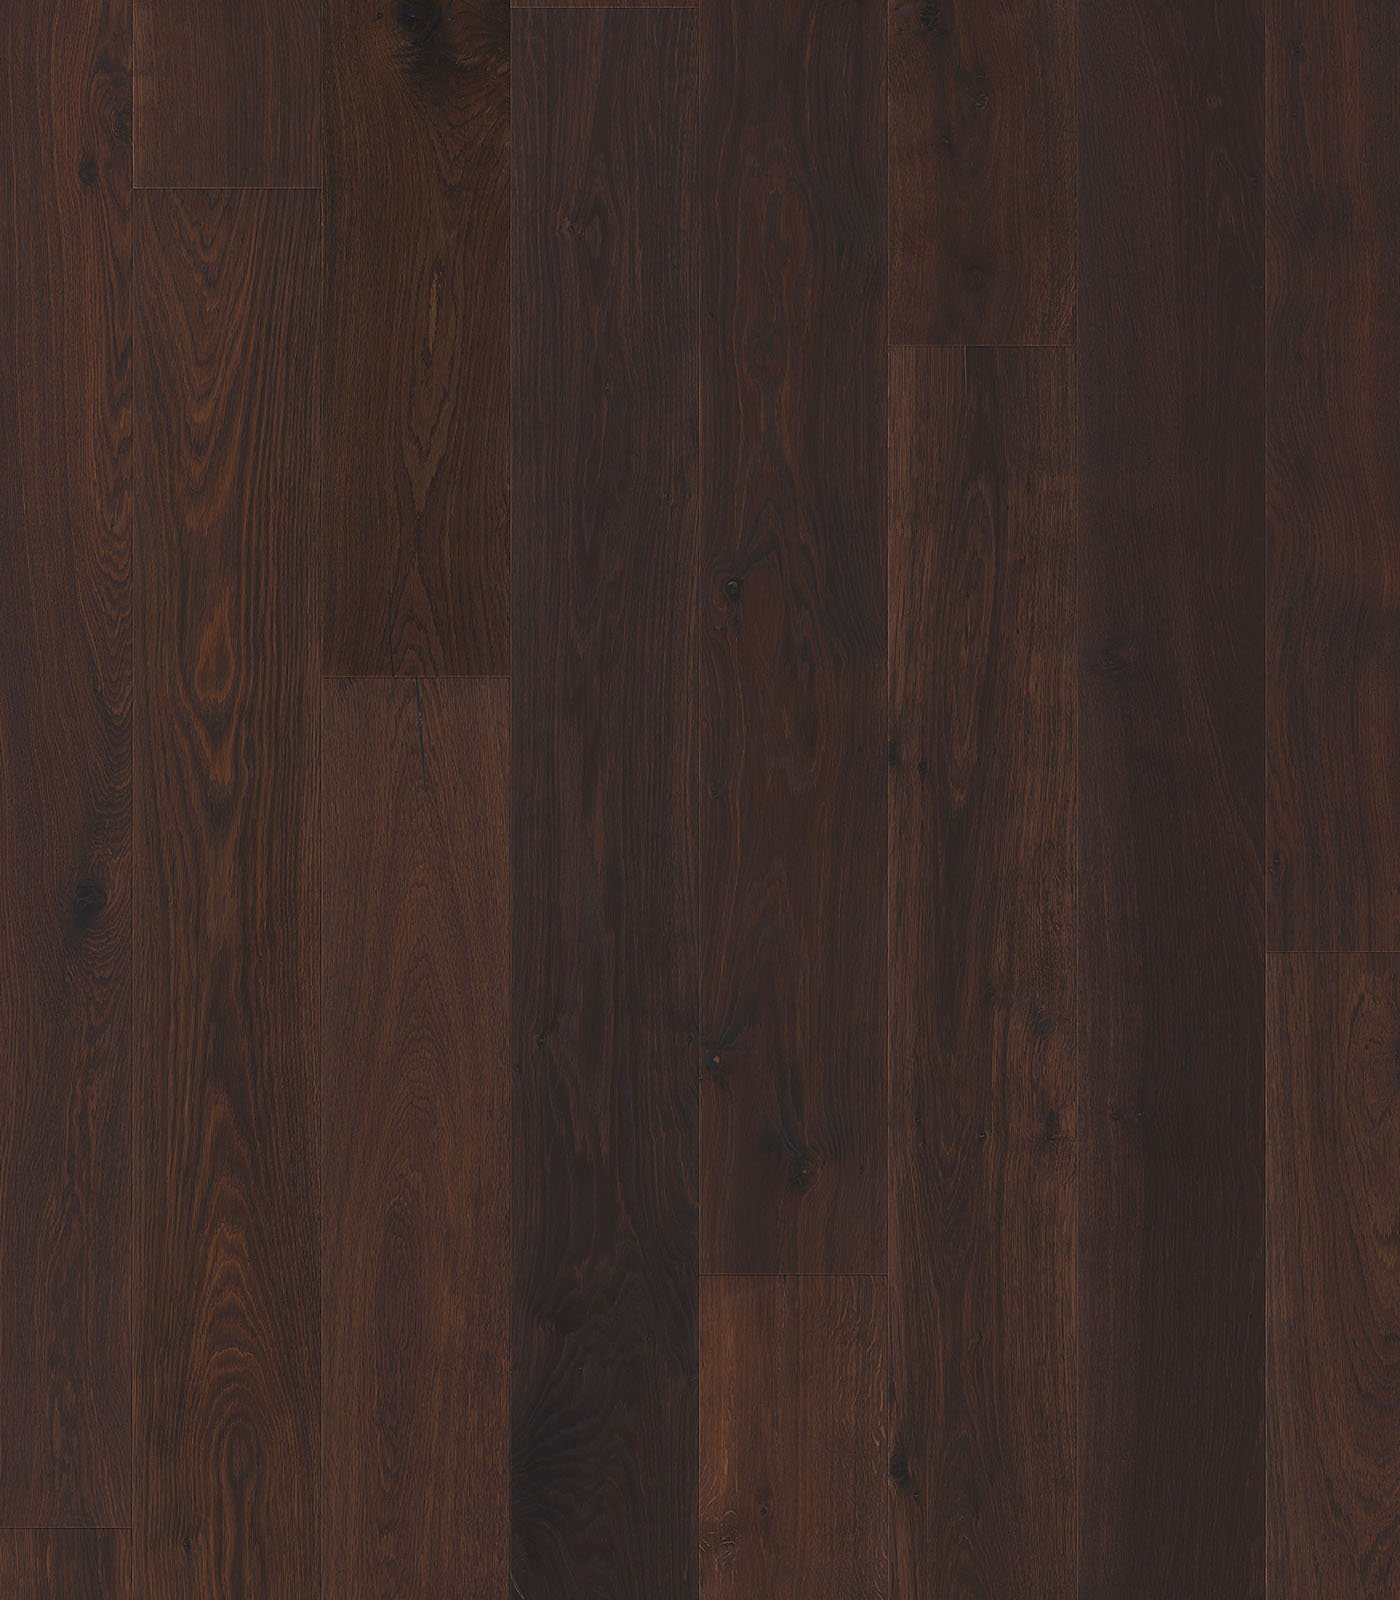 Smoked Oak Rustic Woodline Parquetry